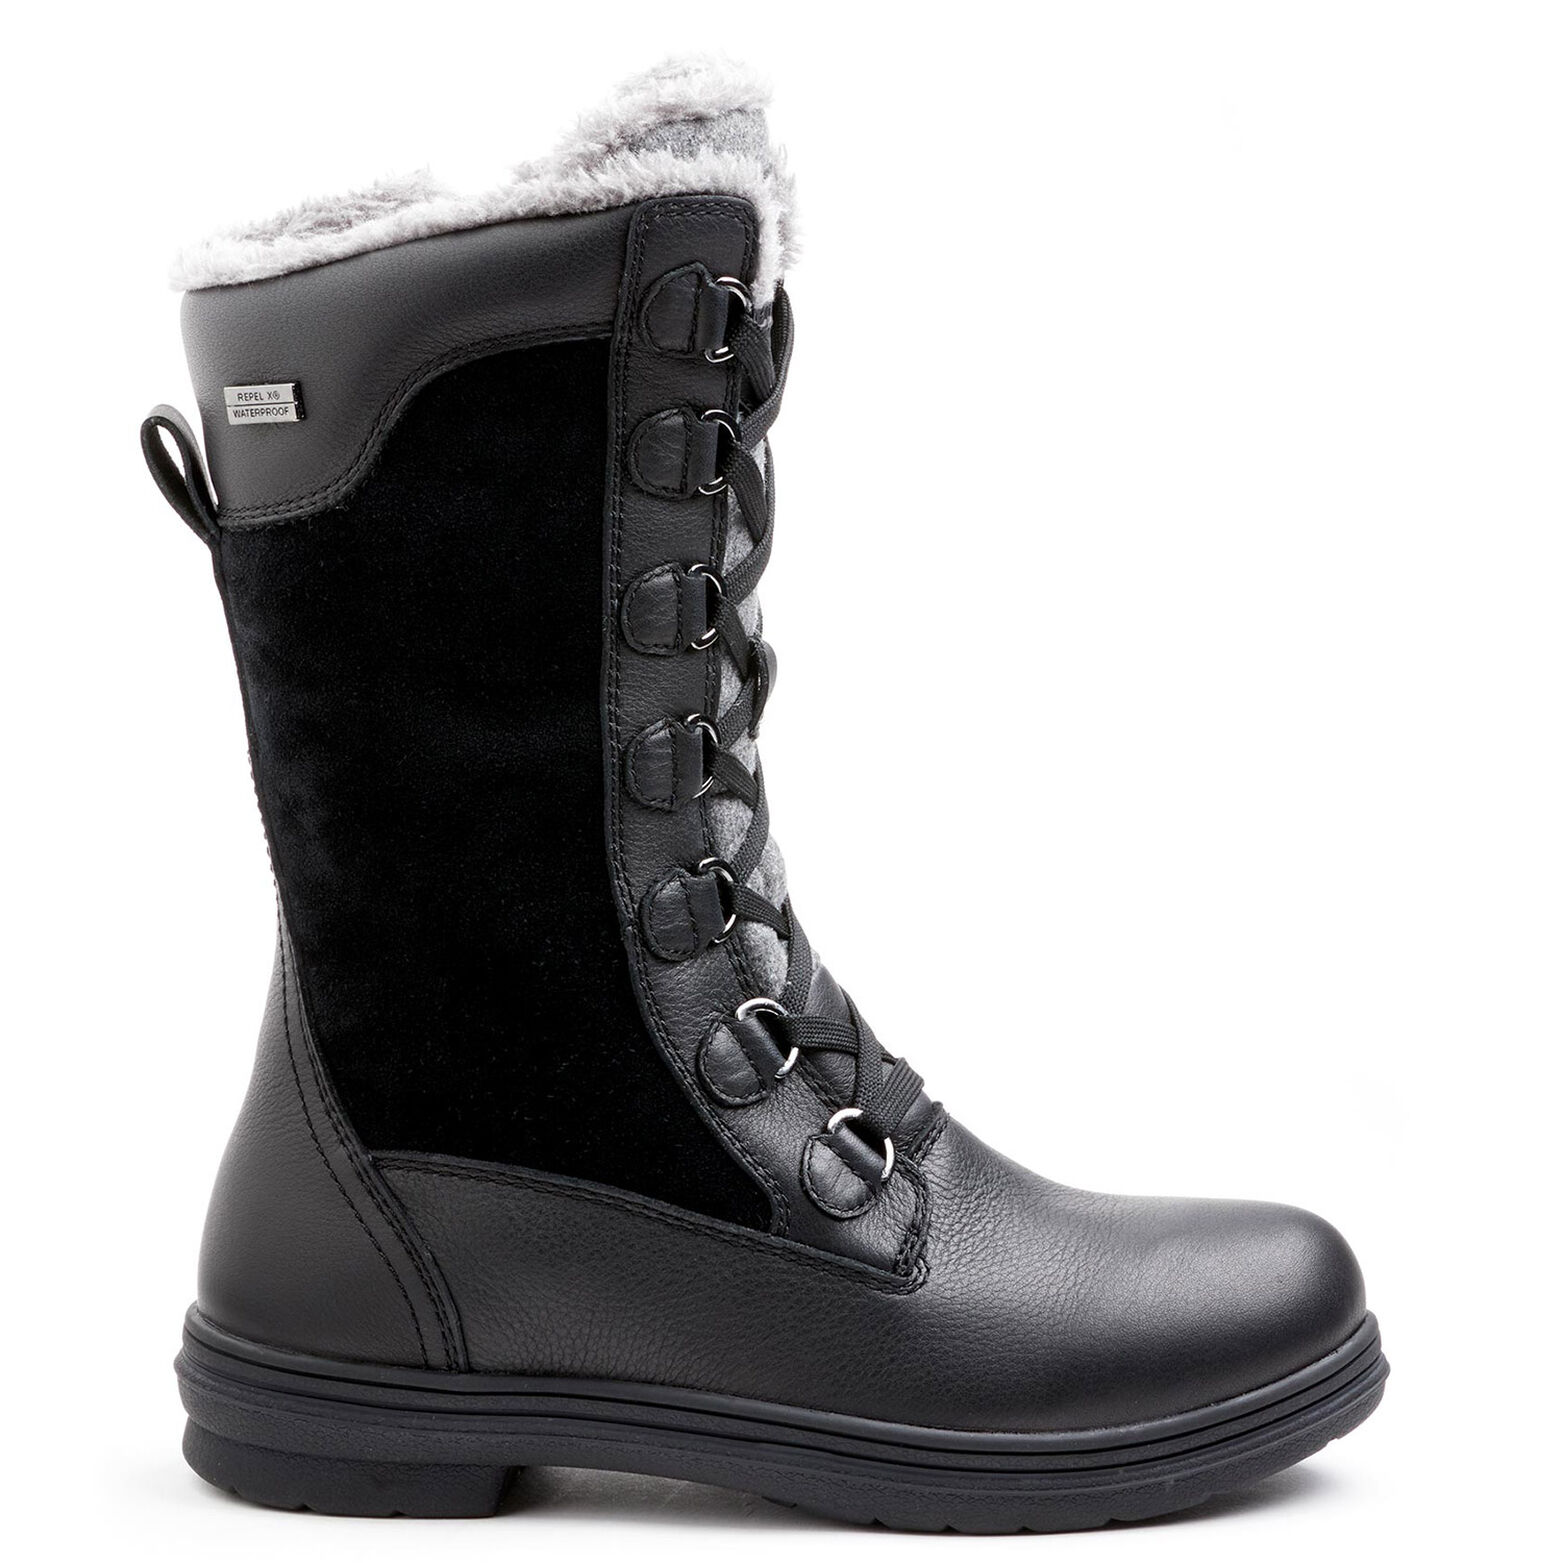 price reduced offer discounts authentic quality Women's Kodiak Glata Tall Winter Boots